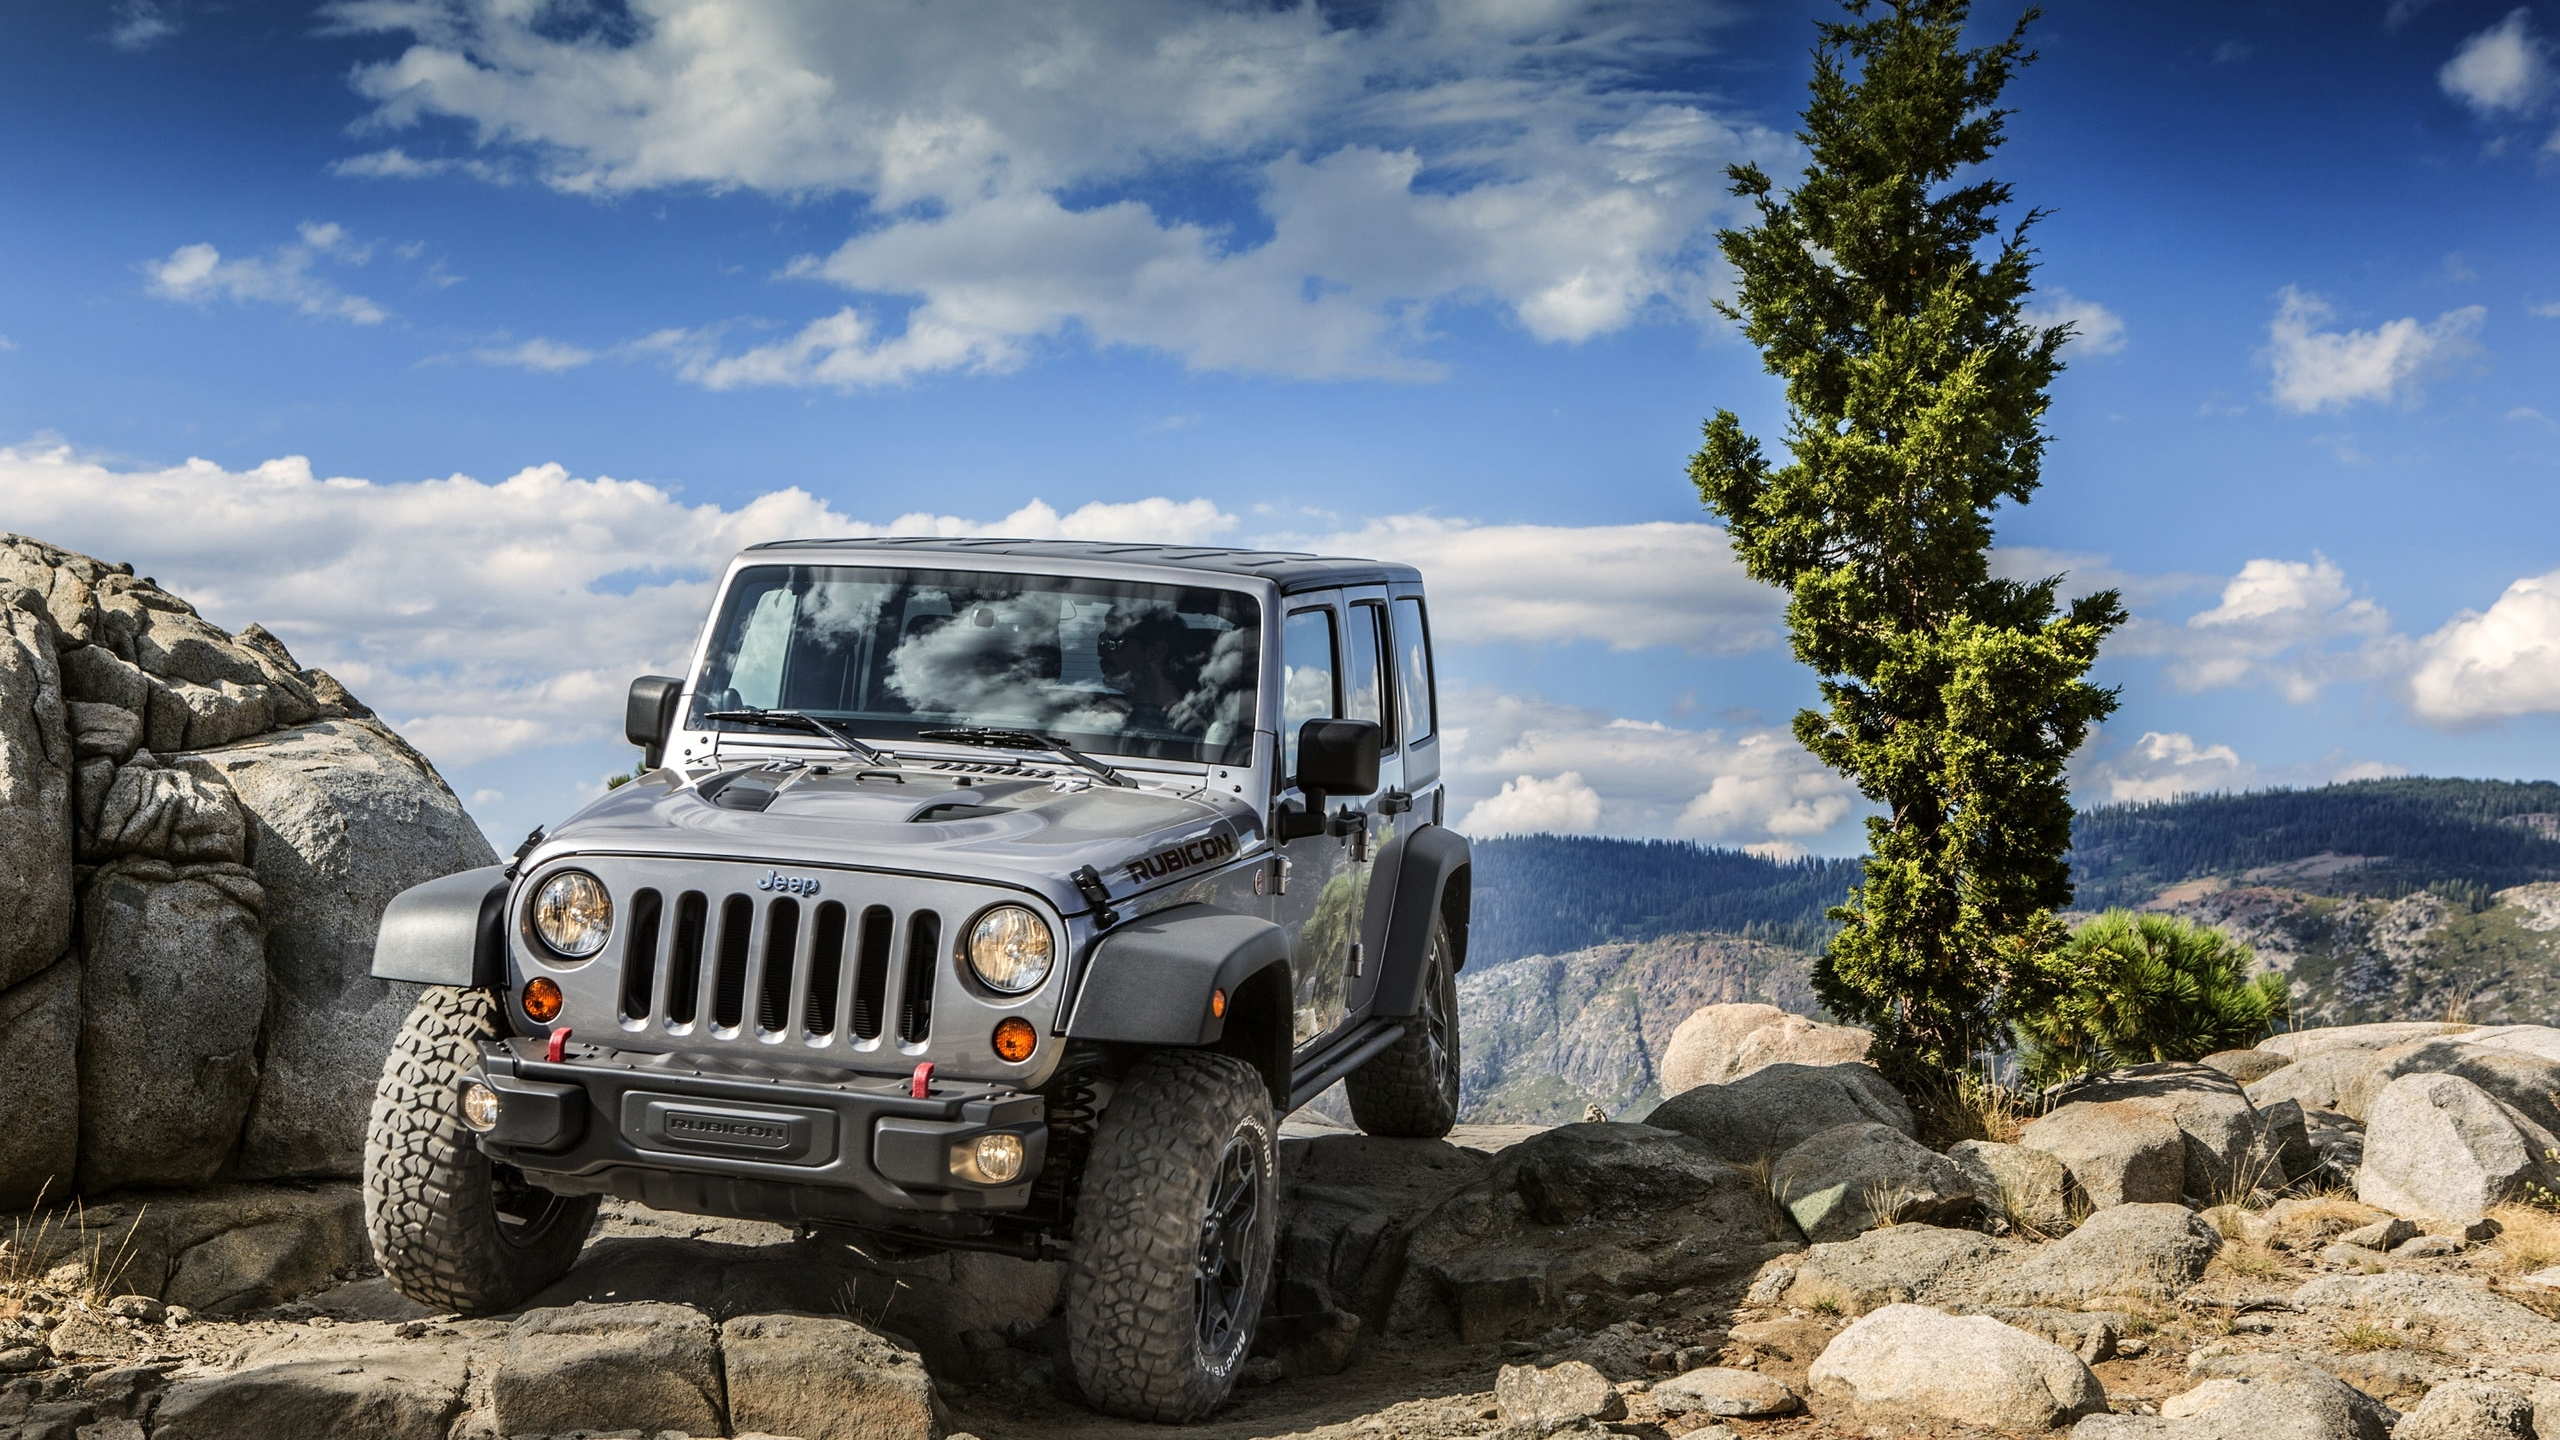 2013 jeep wrangler rubicon 10th anniversary edition wallpaper | hd